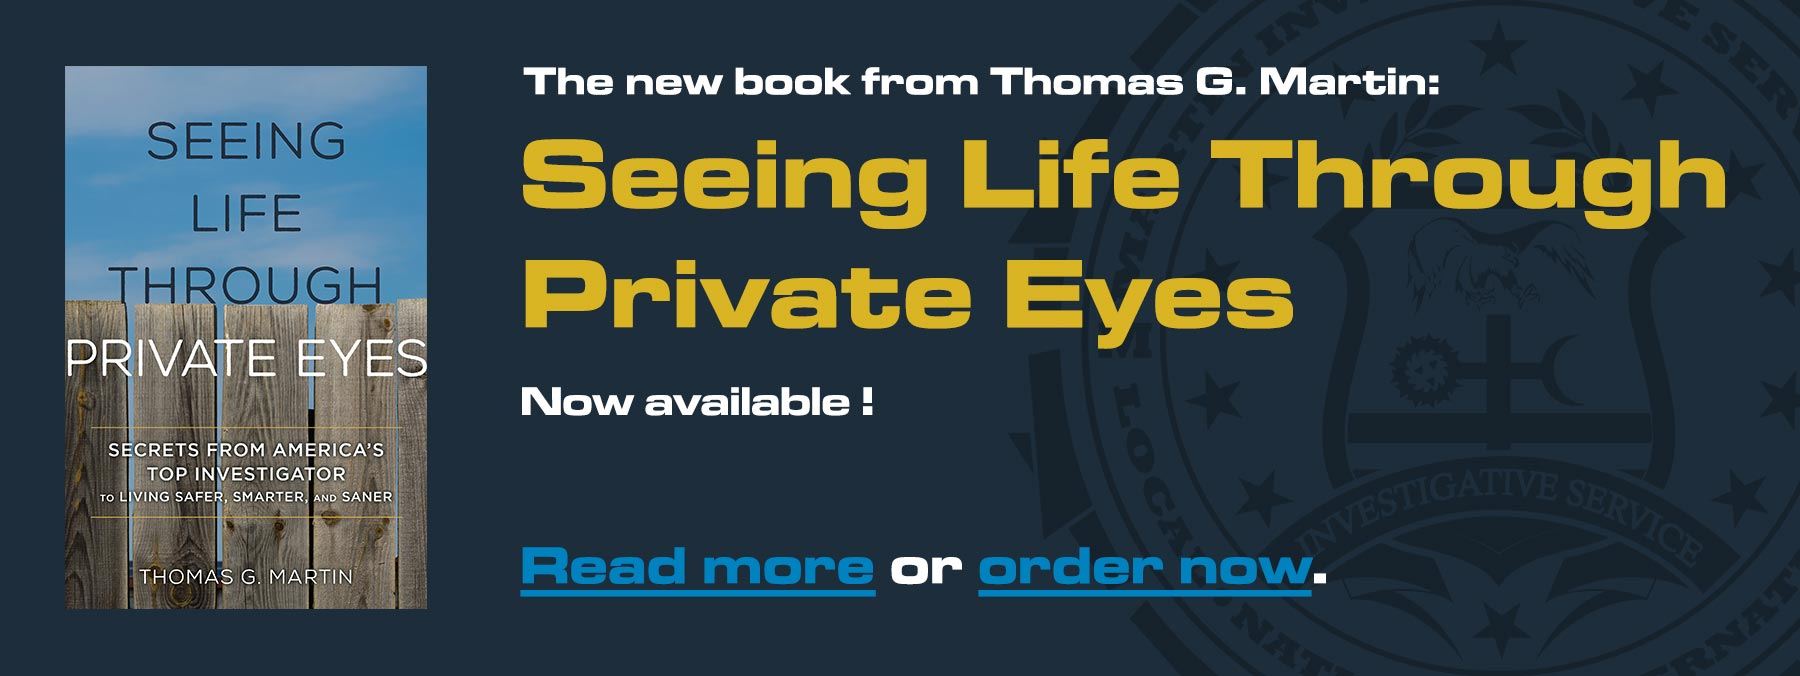 Seeing Life Through Private Eyes: The new book by Thomas G. Martin, is not available. Read more or order now.